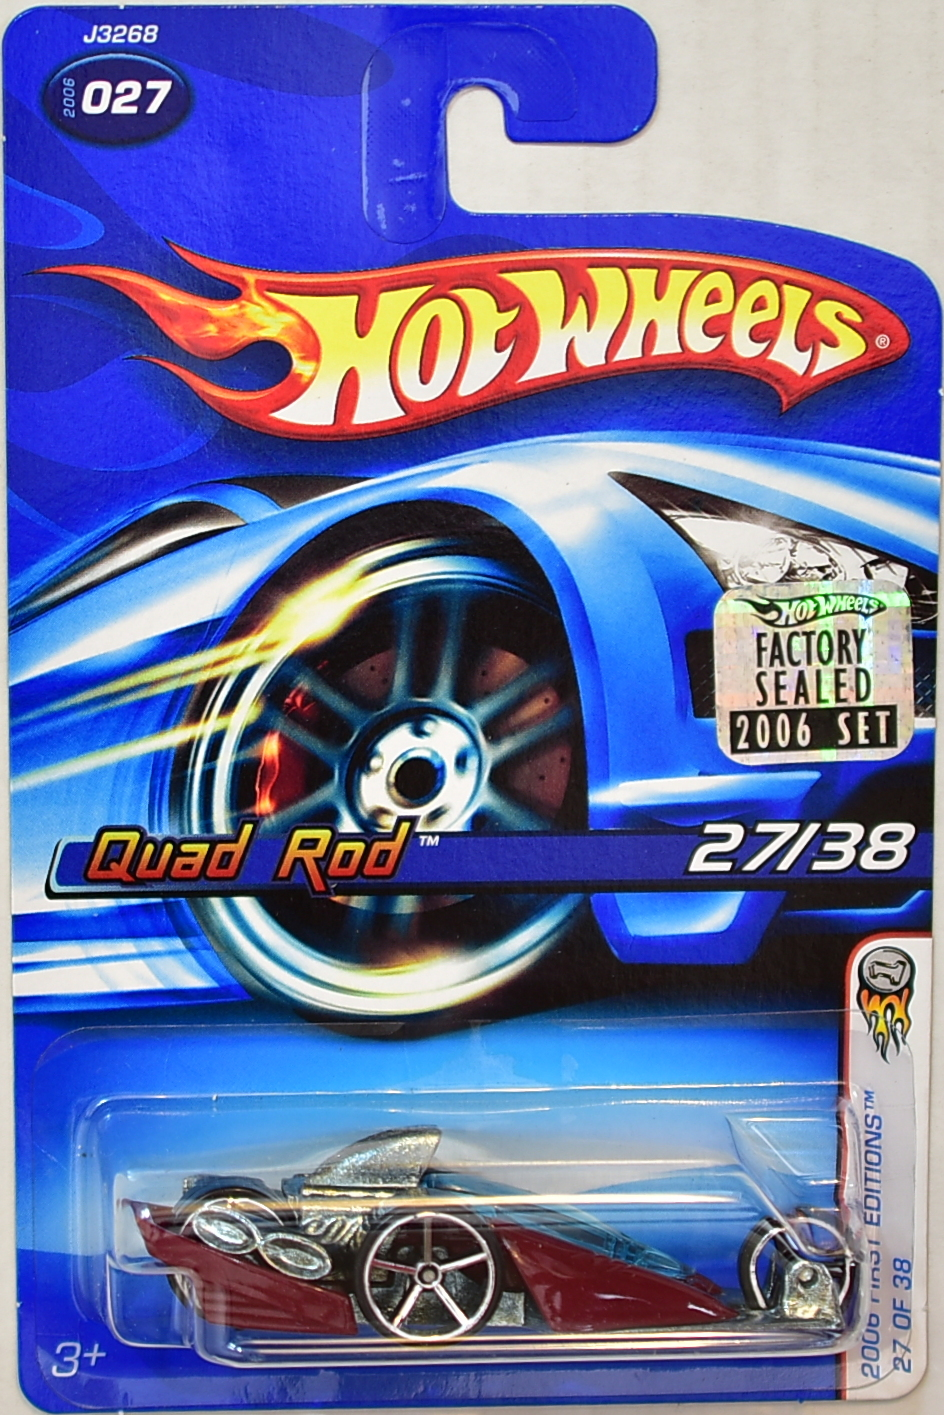 HOT WHEELS 2006 QUAD ROD #027 FIRST EDITIONS 27/38 FACTORY SEALED